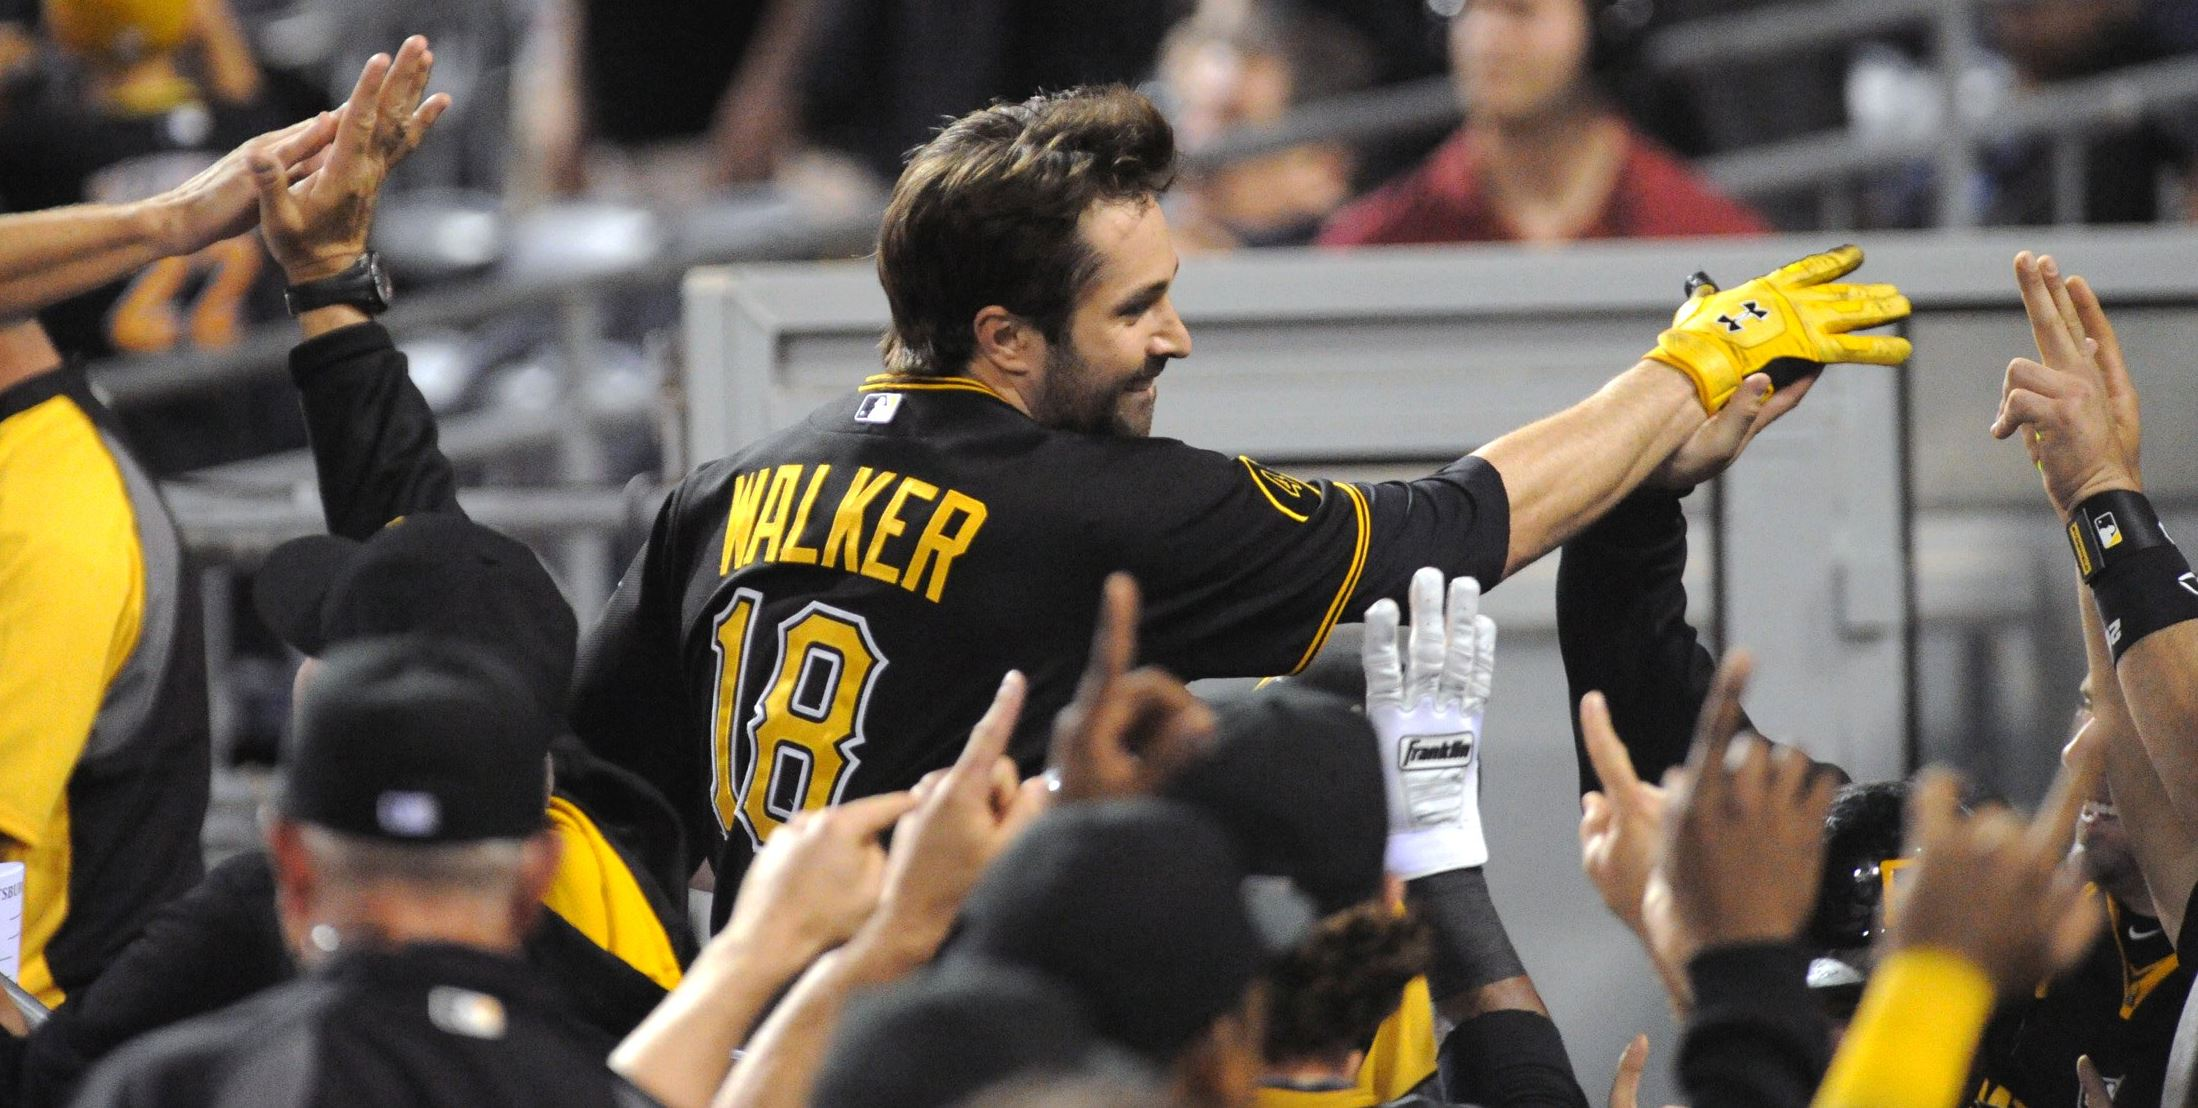 Neil Walkers salary may rank near top with extension